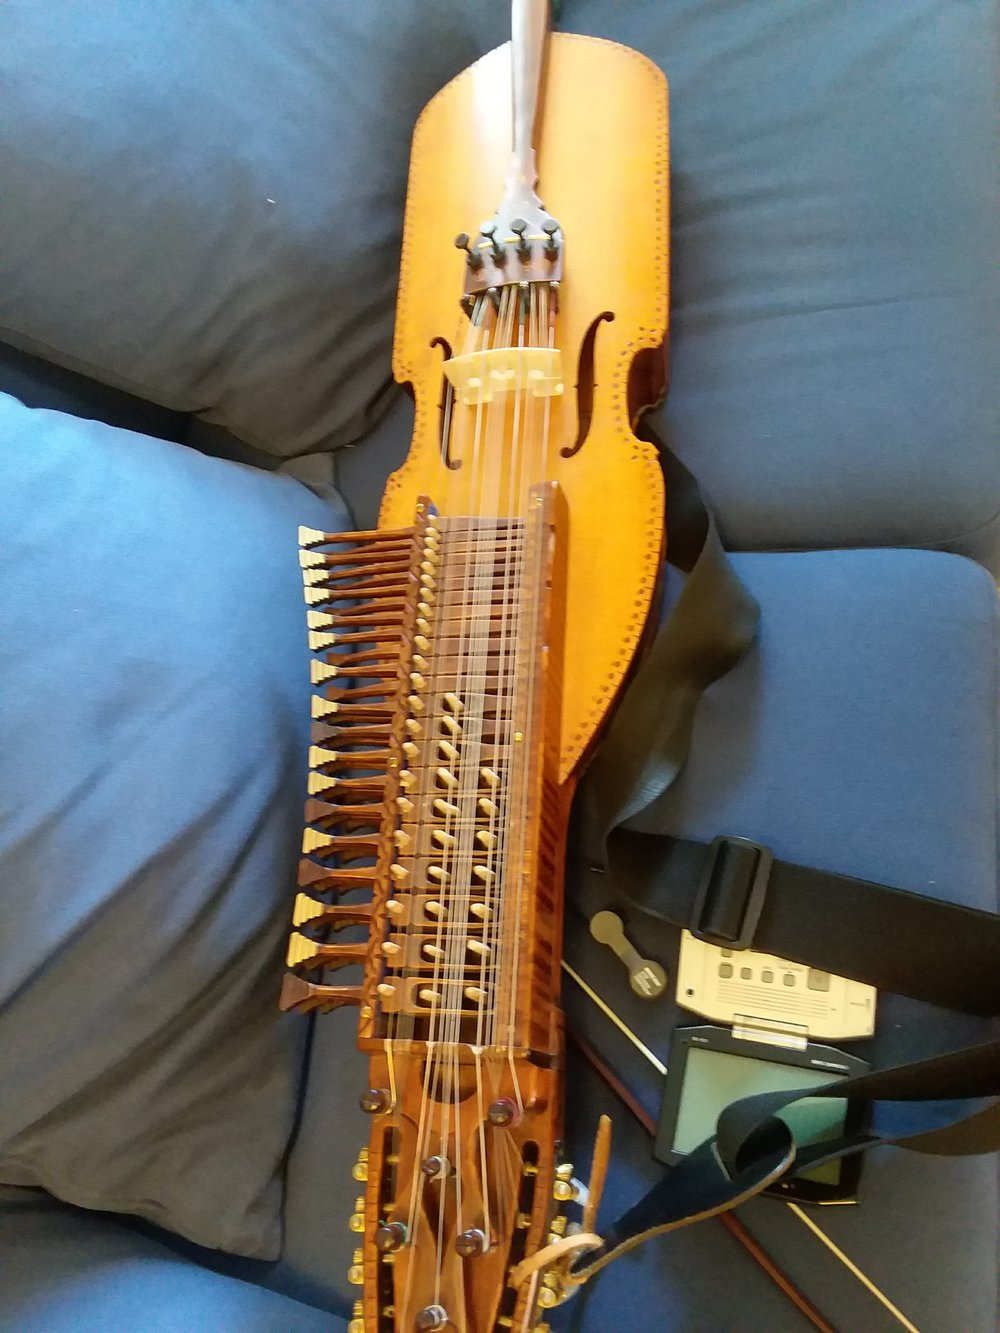 Olov's Nyckelharpa sitting on the couch while we set up for his interview.